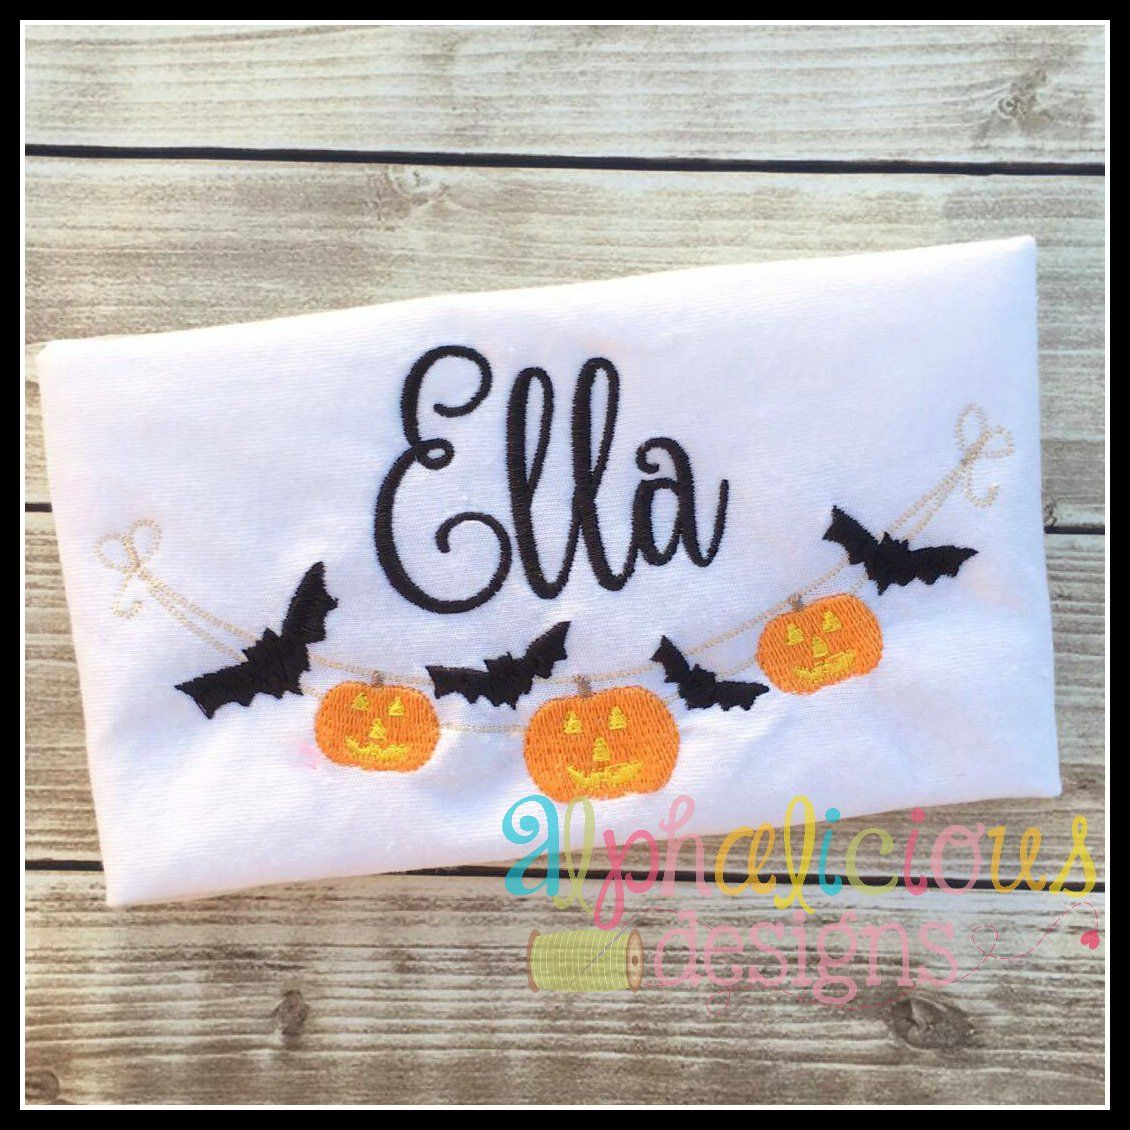 Spooky night embroidery swag alphalicious designs pinterest